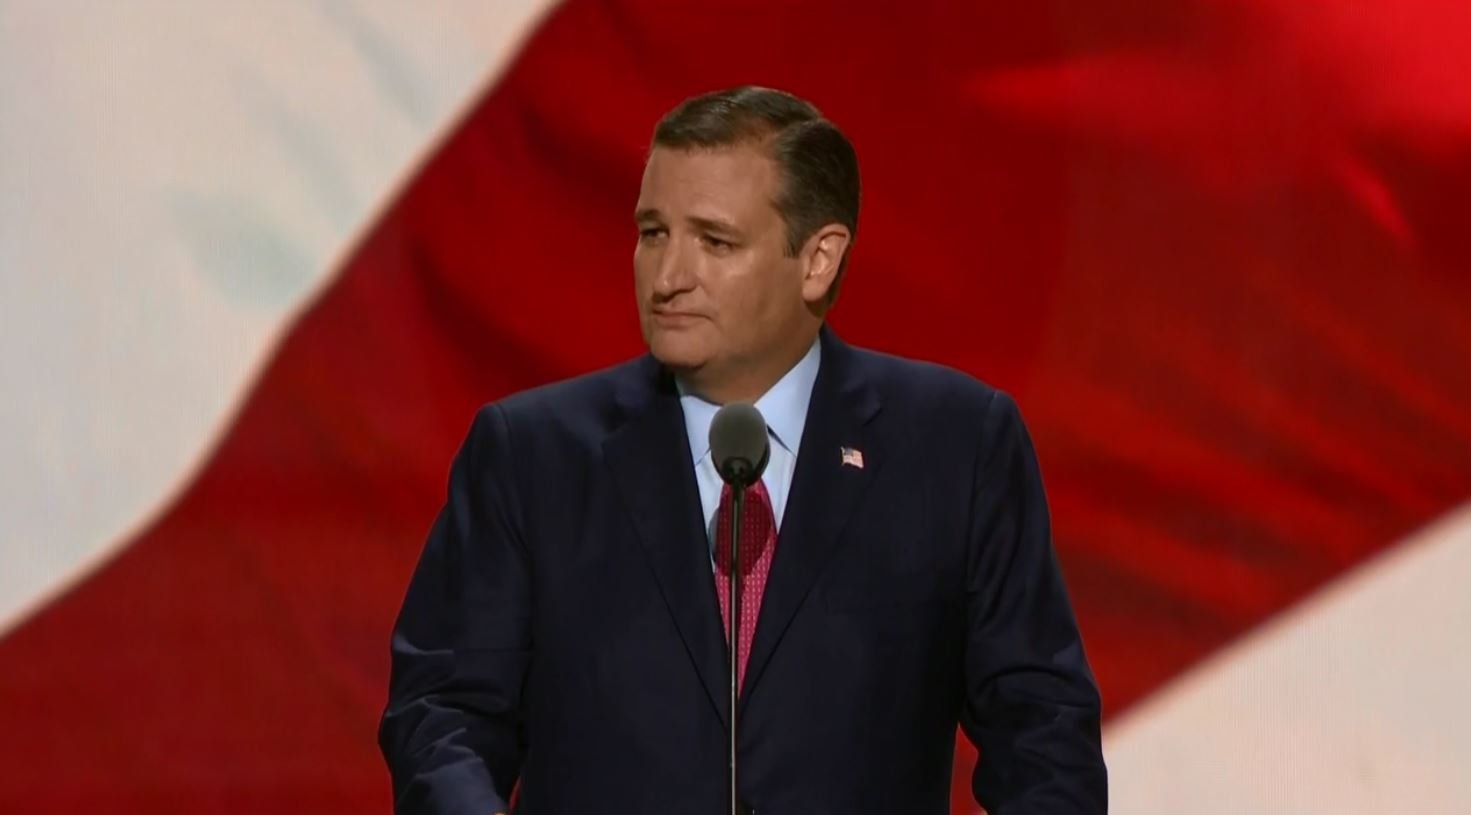 Sen. Ted Cruz doesn't endorse Trump amid boos from crowd